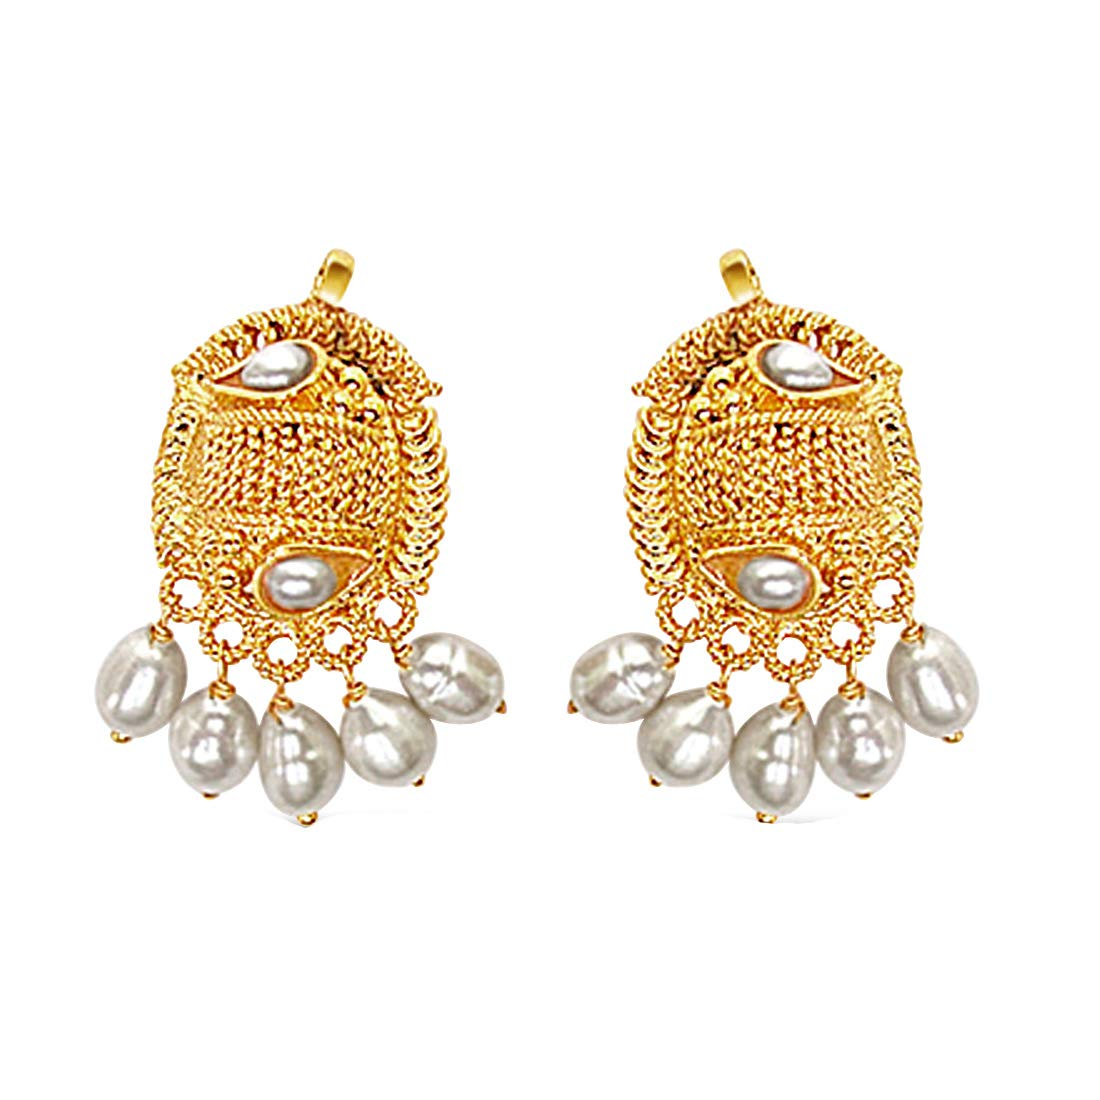 Oval Shaped Freshwater Pearl & Gold Plated Earrings for Women (SE138)